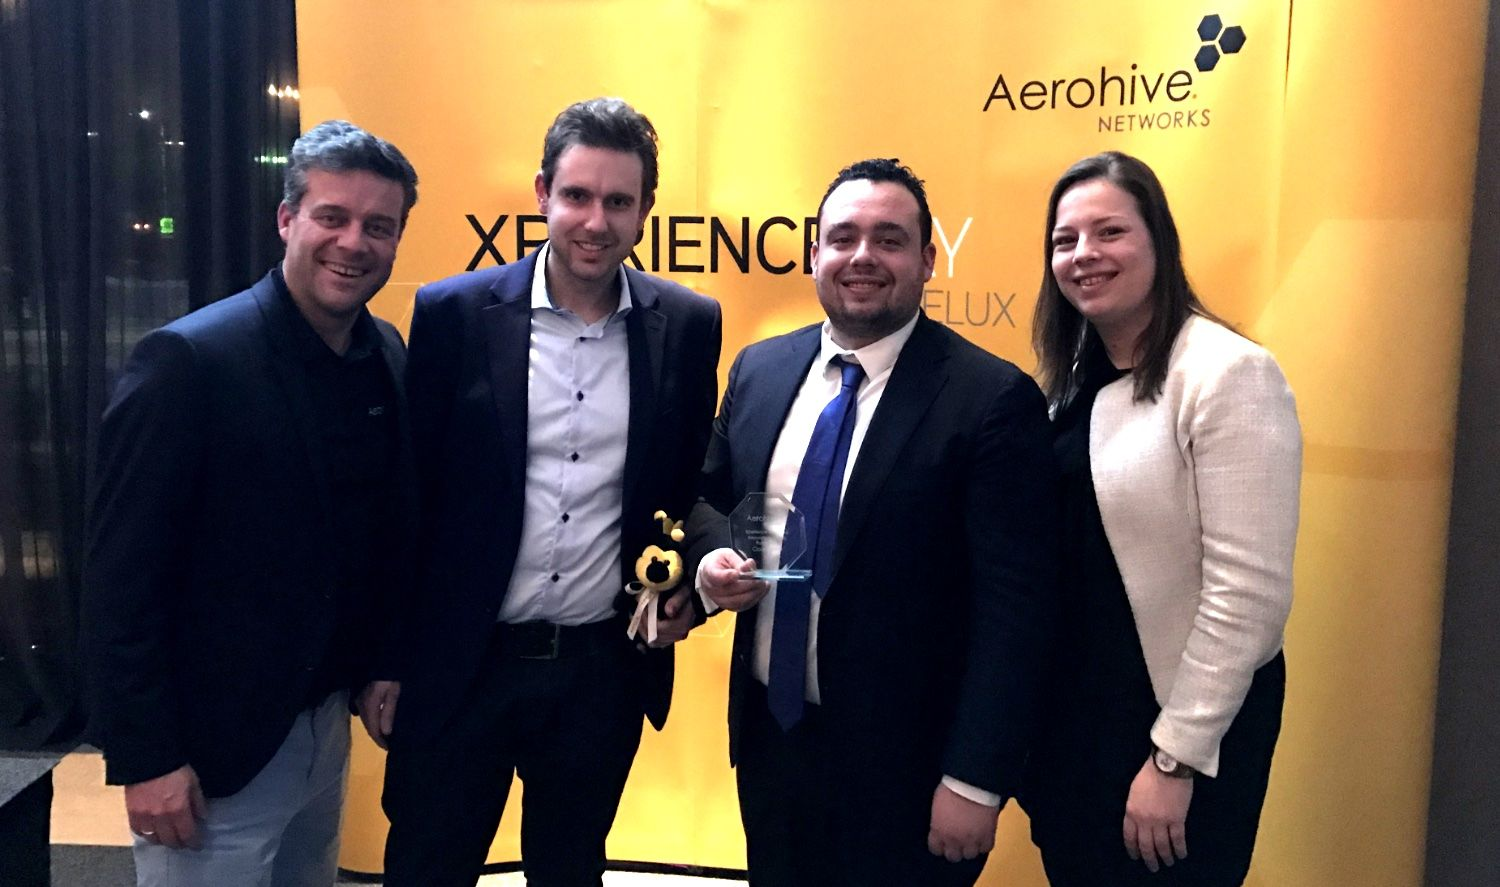 Extreme Networks (voorh. Aerohive) Award Uitreiking